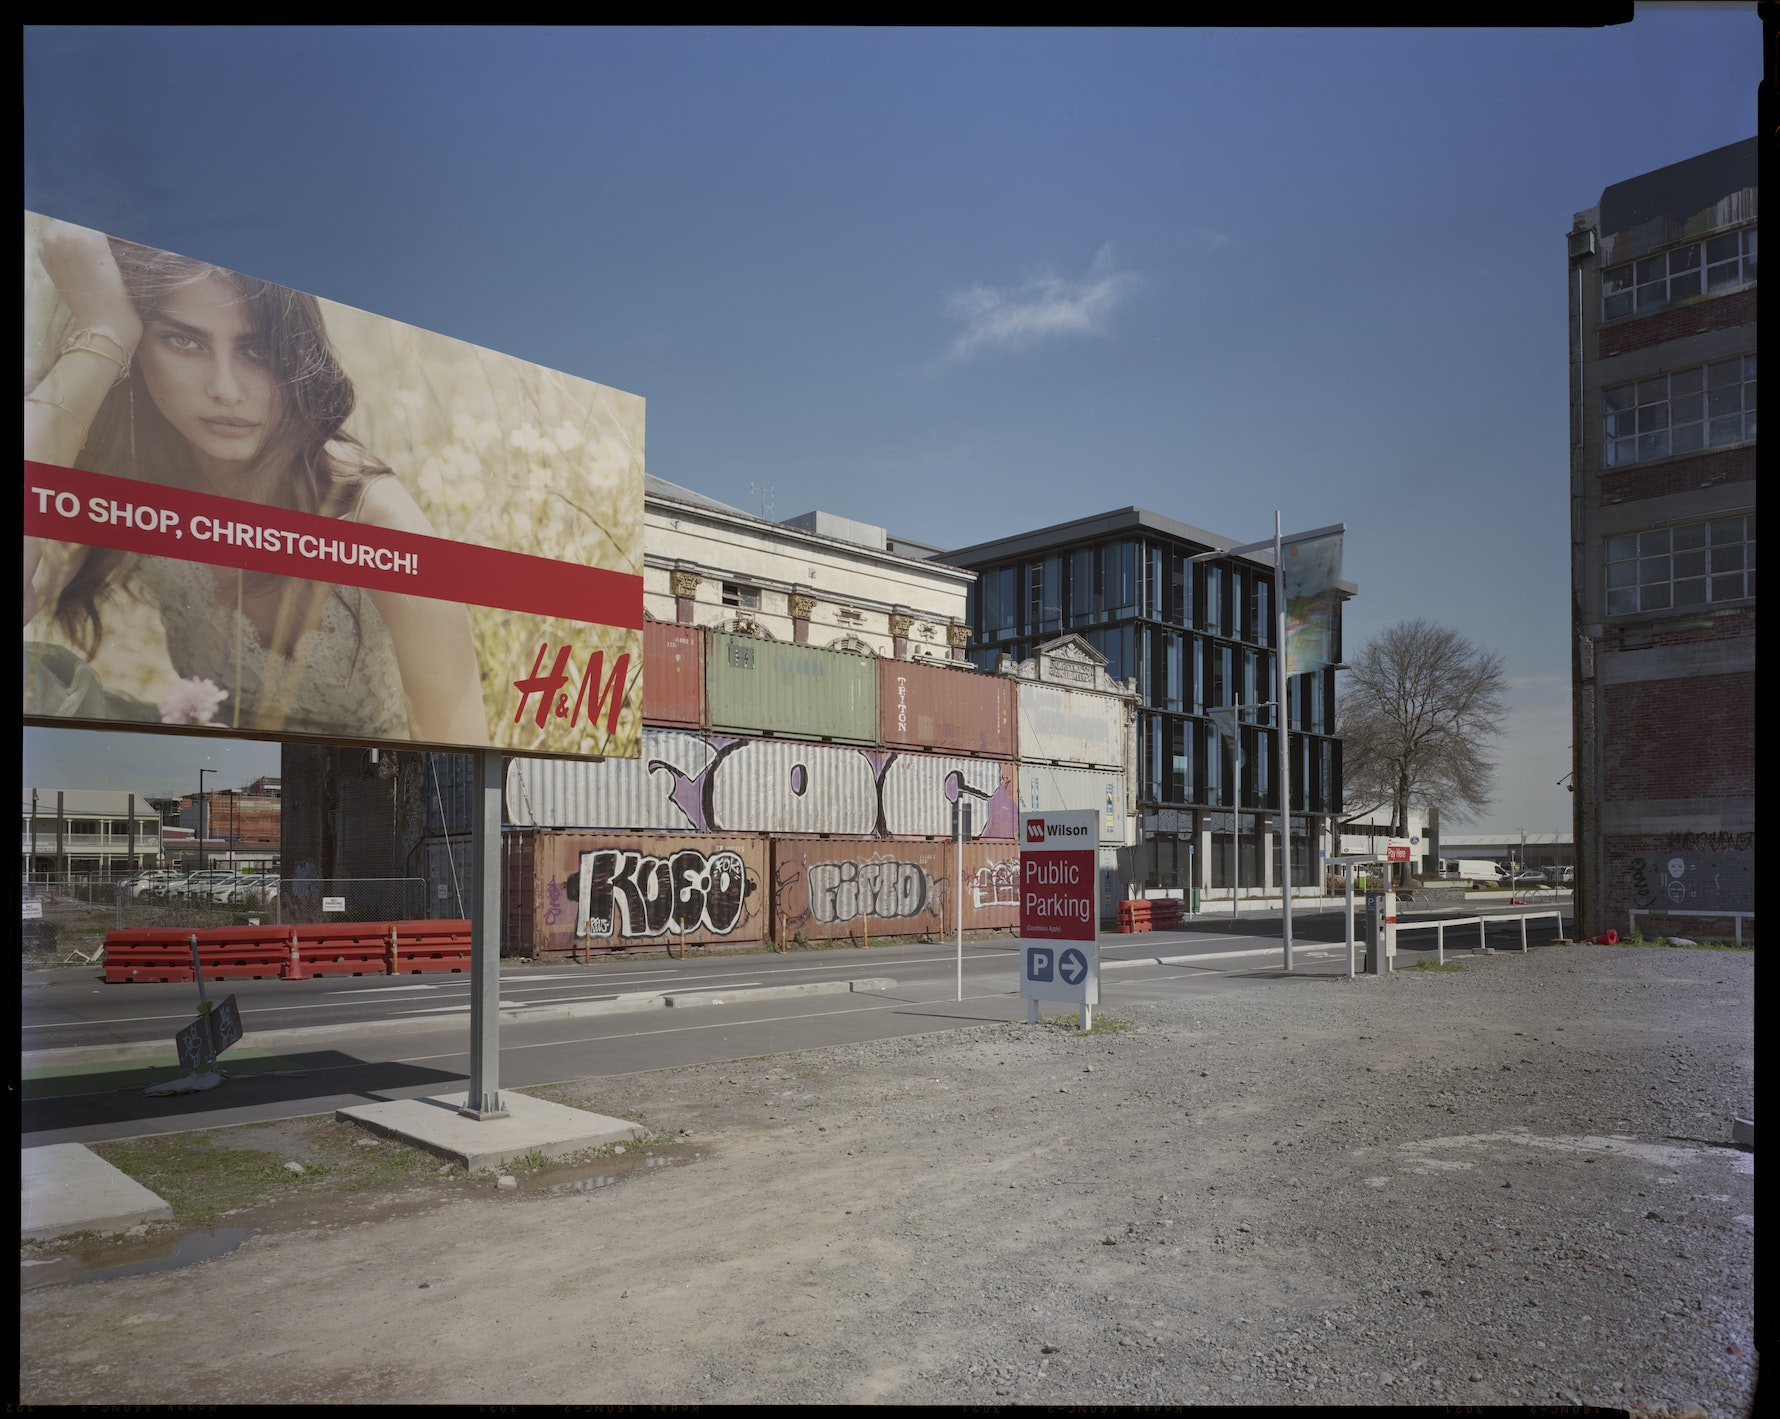 Tuam Street looking SW. (H&M billboard), 24th September 2017.